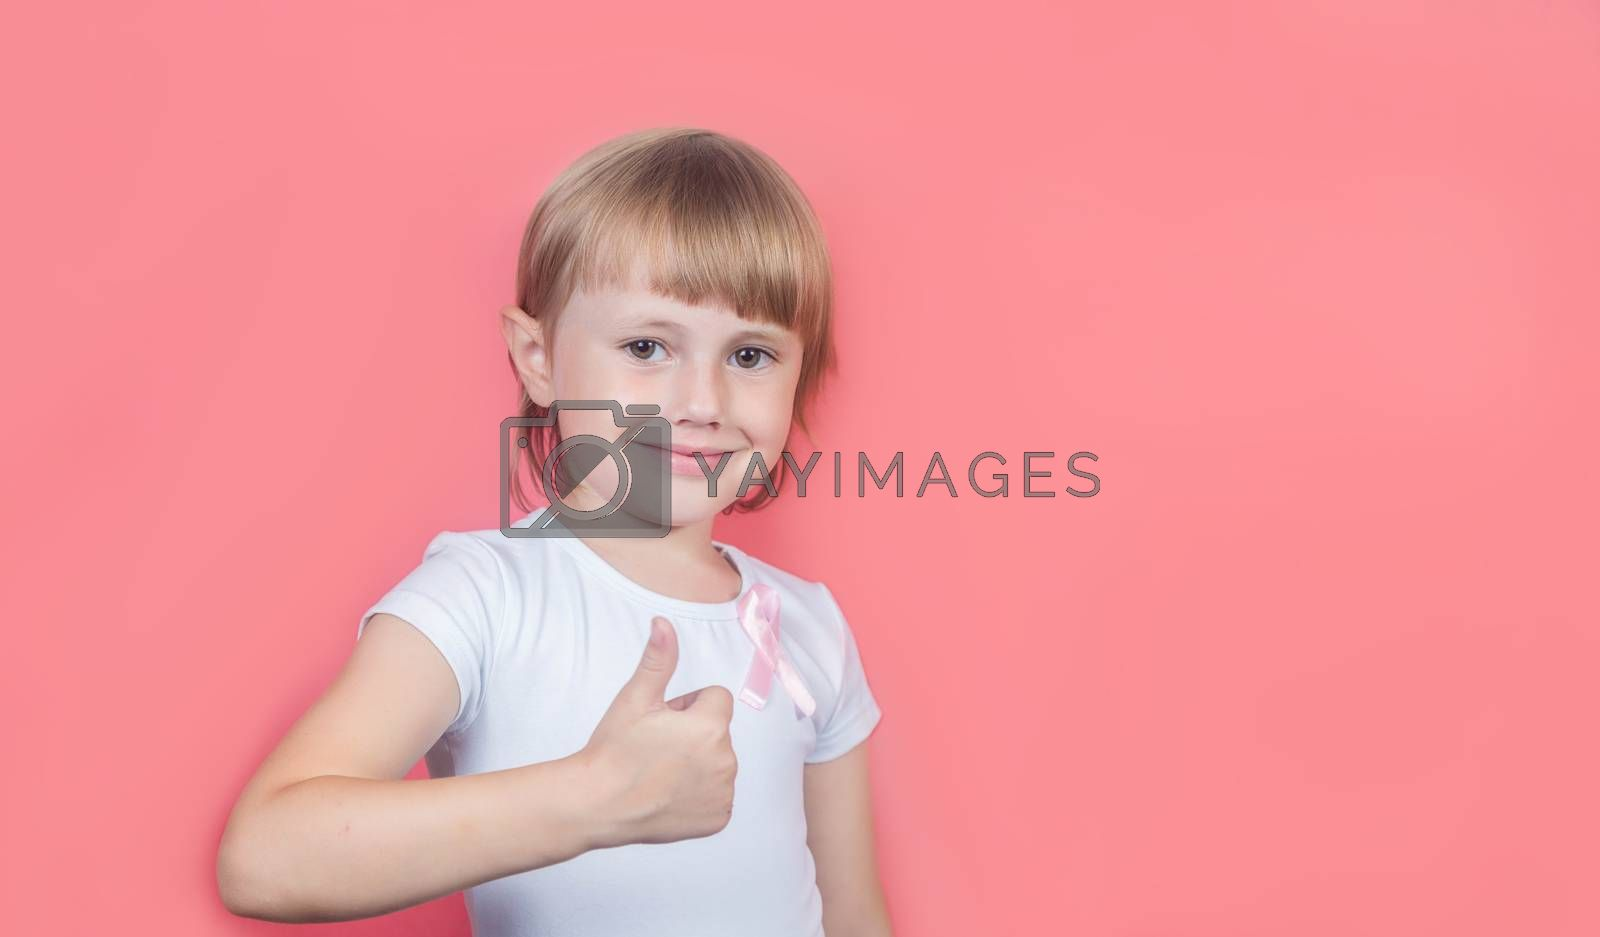 .Little girl showing thumb up wearing white t-shirt and pink breast cancer awareness ribbon